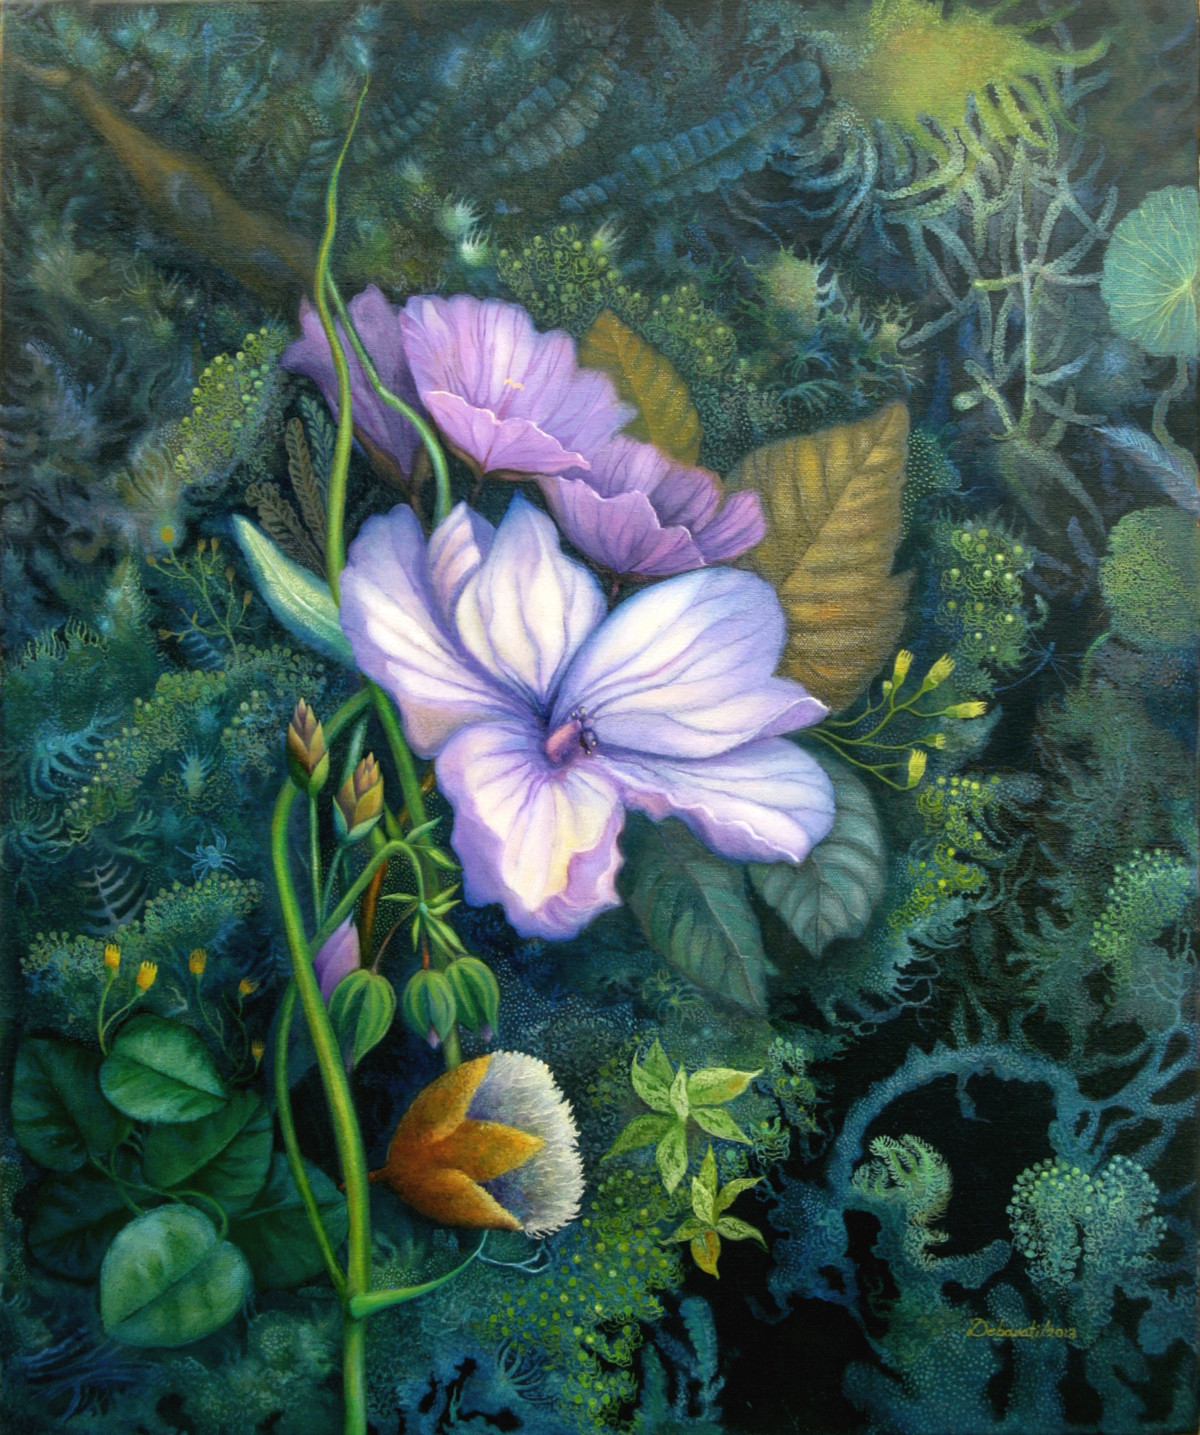 Fantasy Mauve - Oil paining by Debarati RoySaha